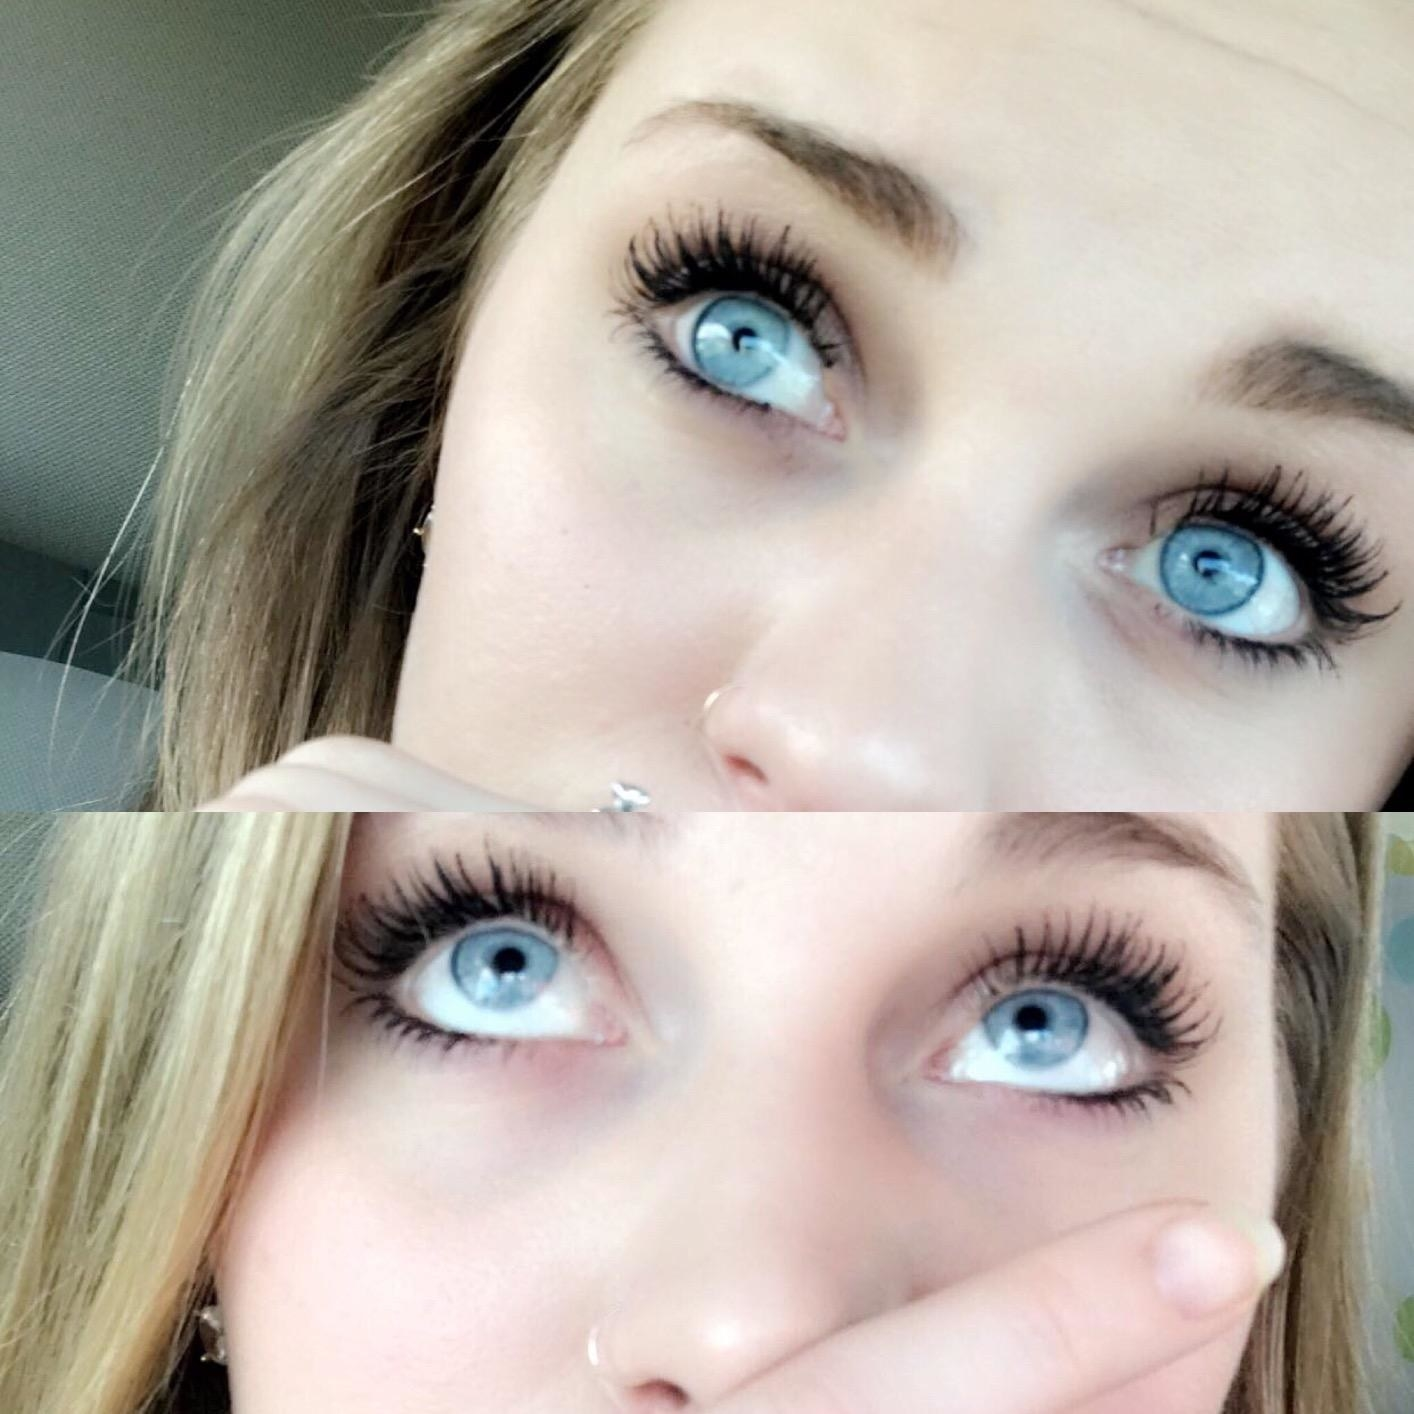 Two photos of someone with blue eyes and dark mascara.